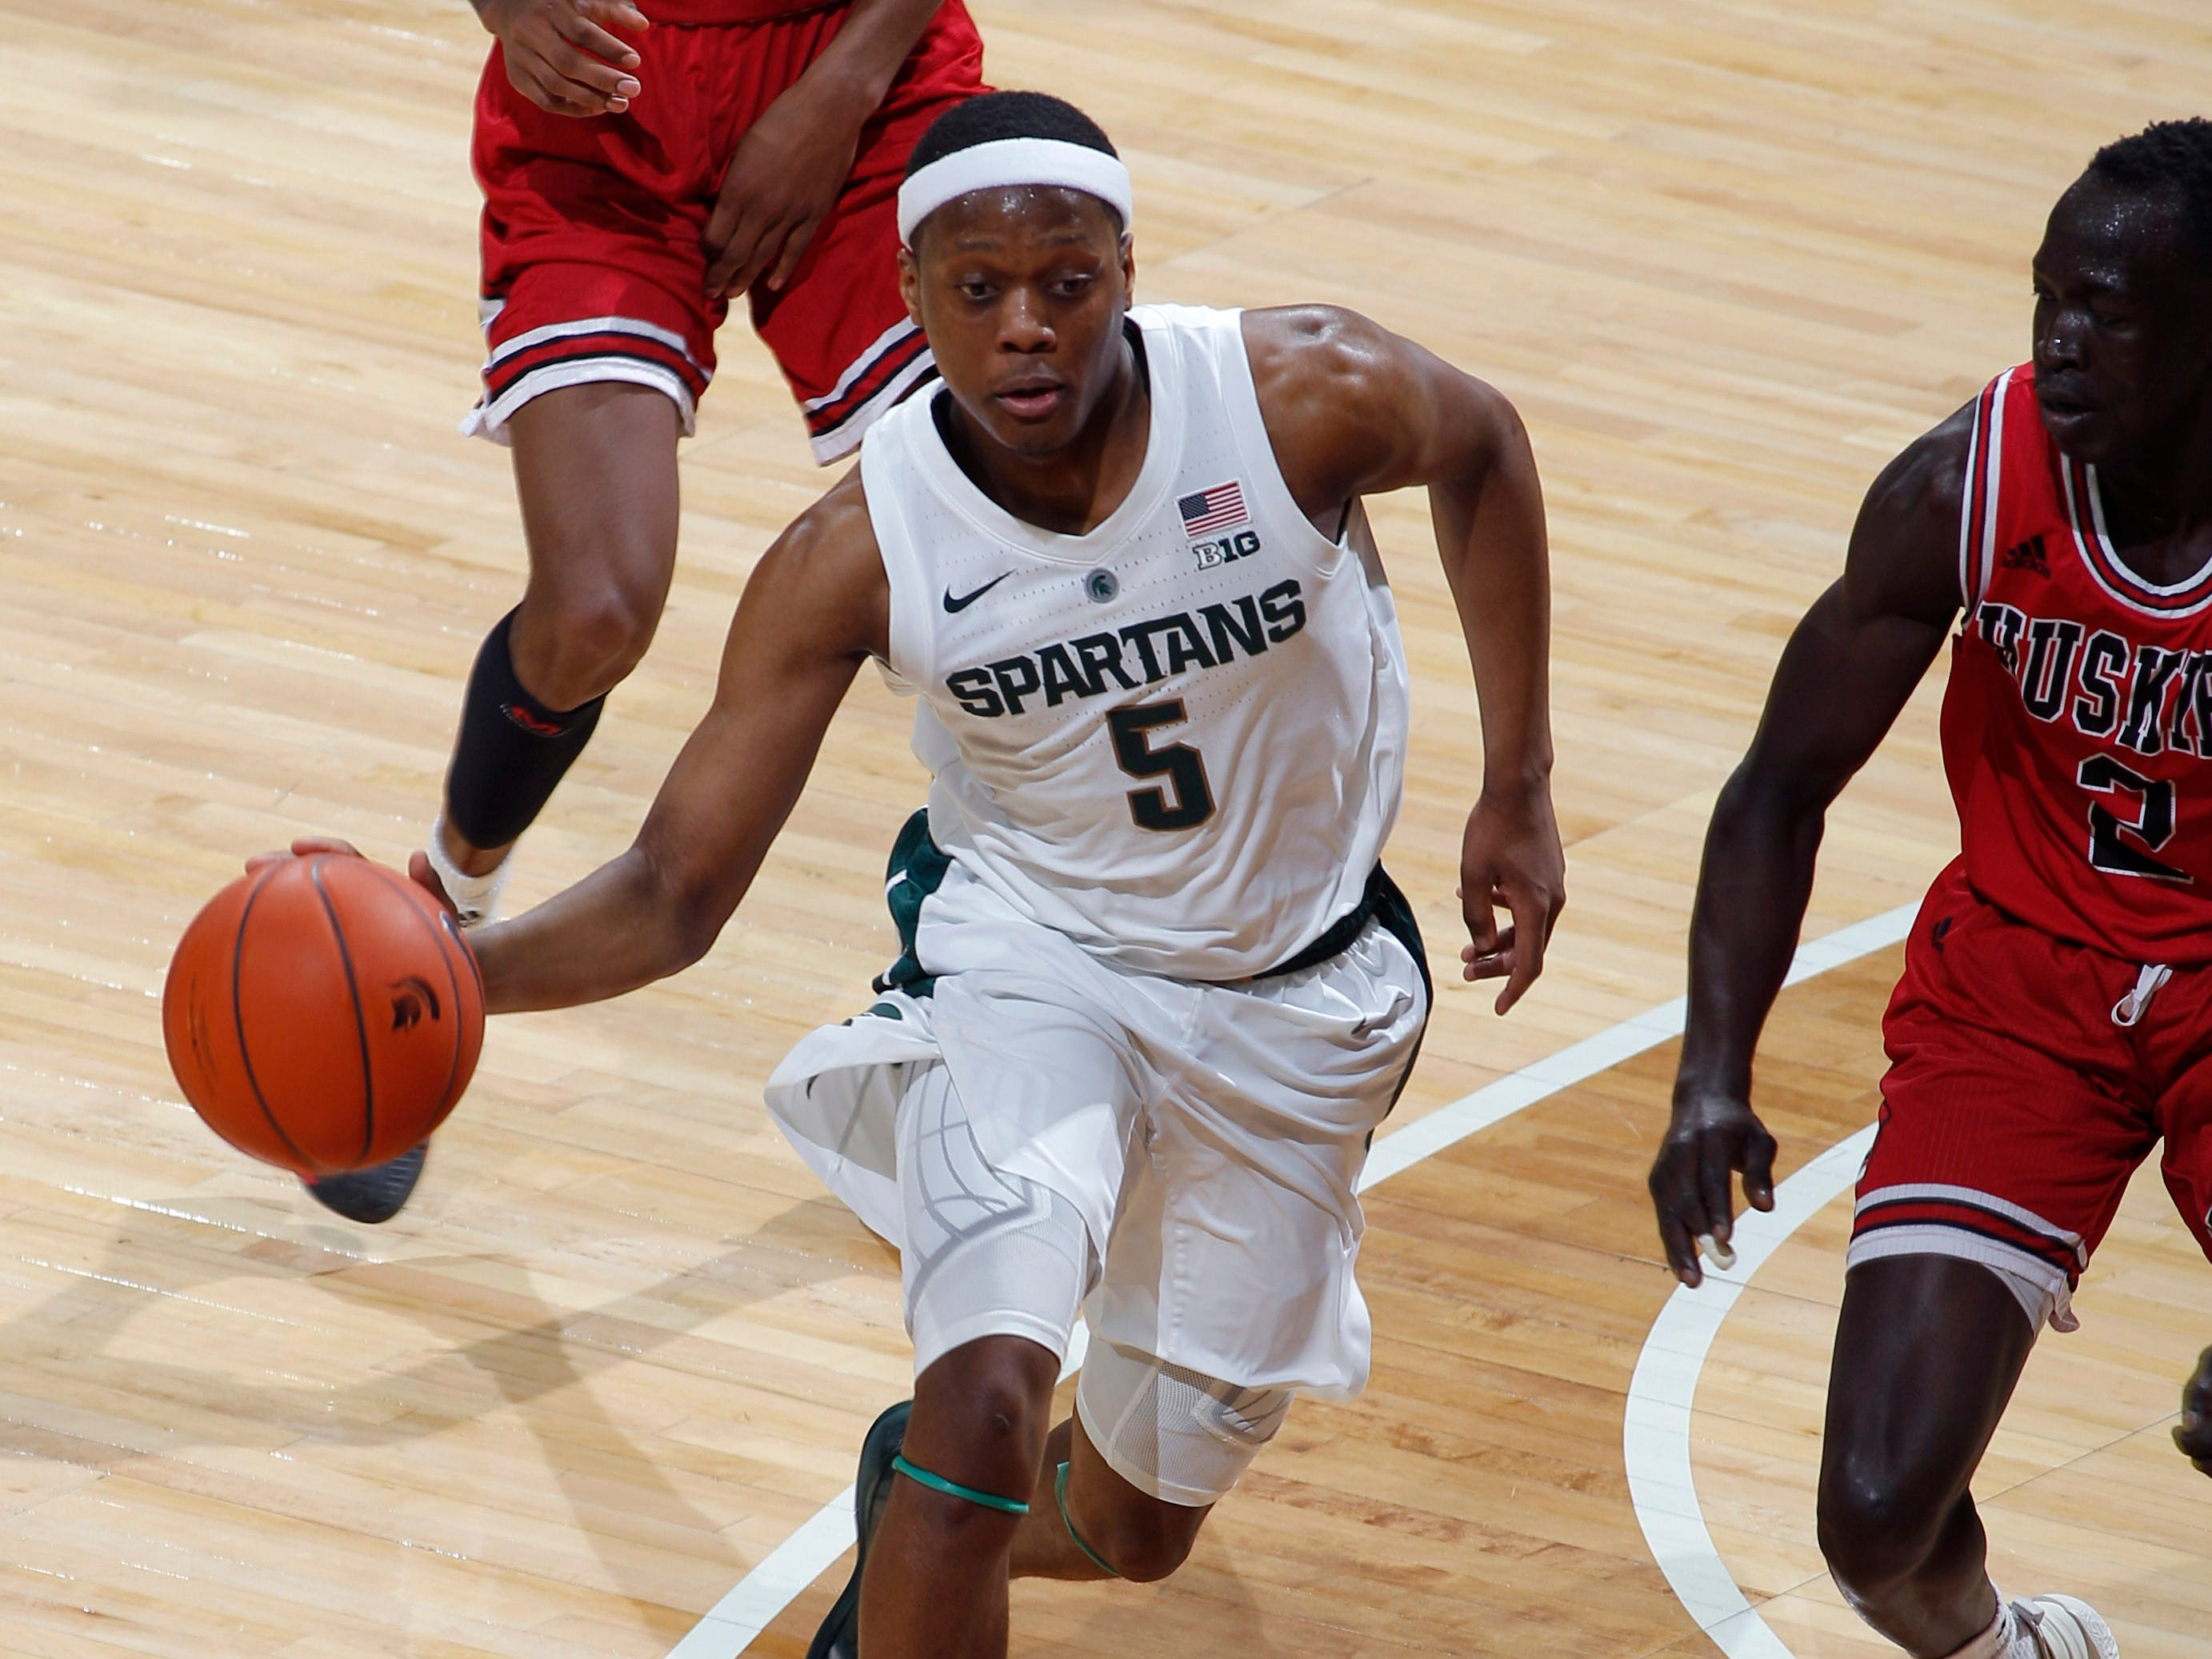 Michigan State's Cassius Winston (5) drives against Northern Illinois' Gairges Daow, Saturday, Dec. 29, 2018, in East Lansing, Mich.